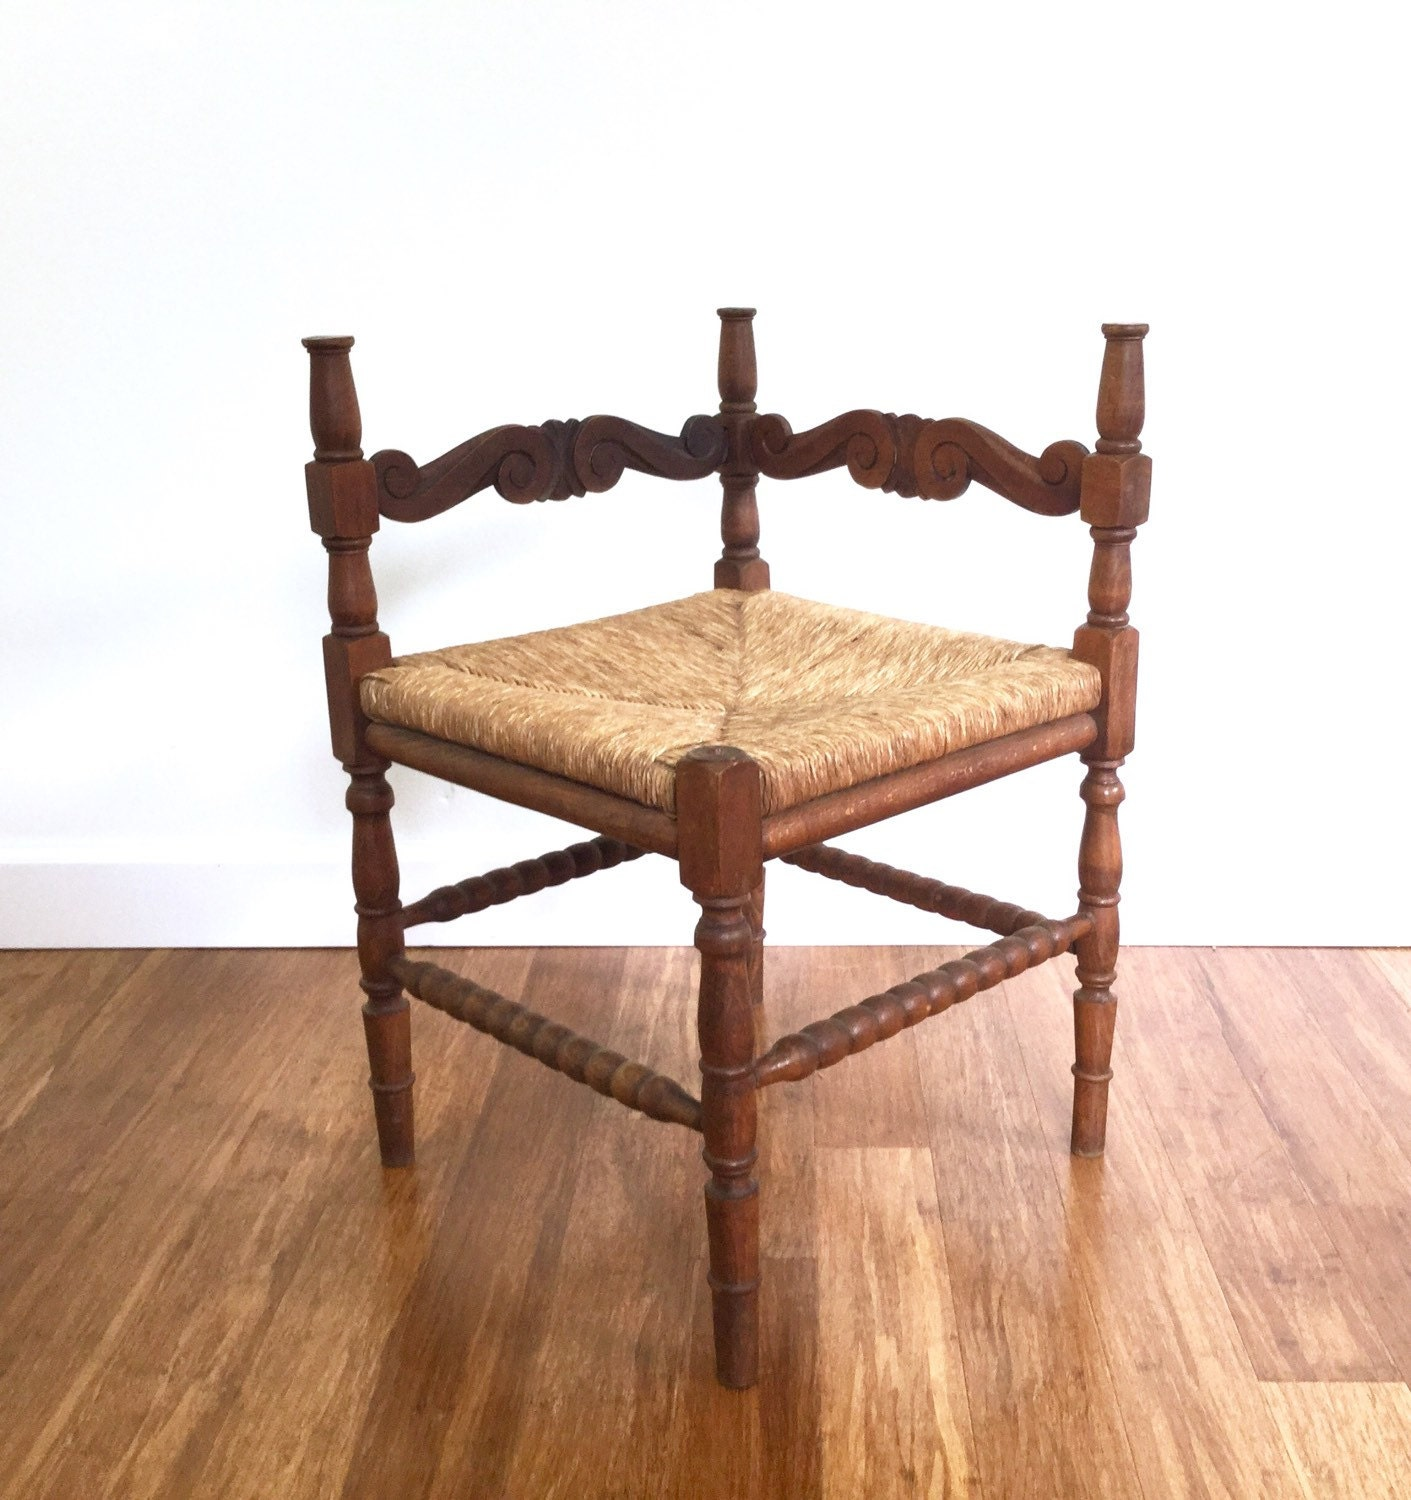 Very Impressive portraiture of Antique Woven Rush Corner Chair Carved Wood by ScoopsVintageModern with #A65D25 color and 1411x1500 pixels